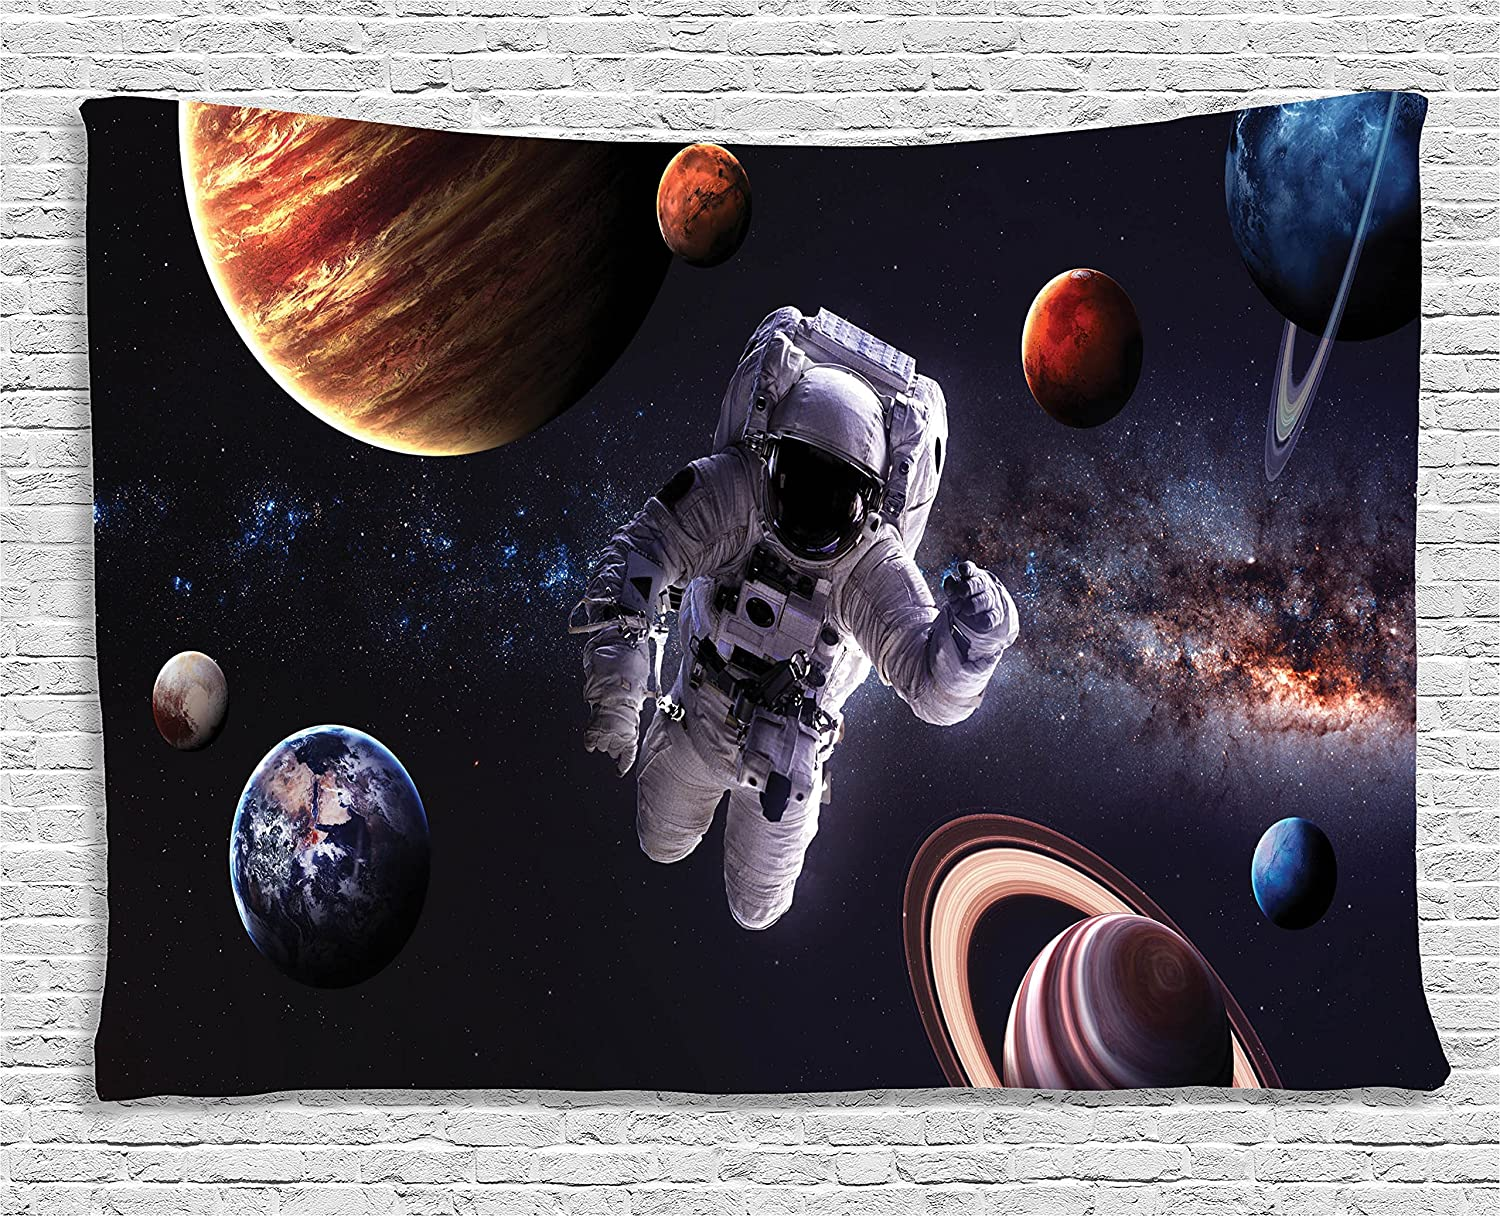 60 W X 40 L Inches Multi Ambesonne Outer Space Decor Tapestry Wall Hanging for Bedroom Living Room Dorm Astronaut Between Planets Mars Neptune Jupiter Plasma Ethereal Sphere Picture